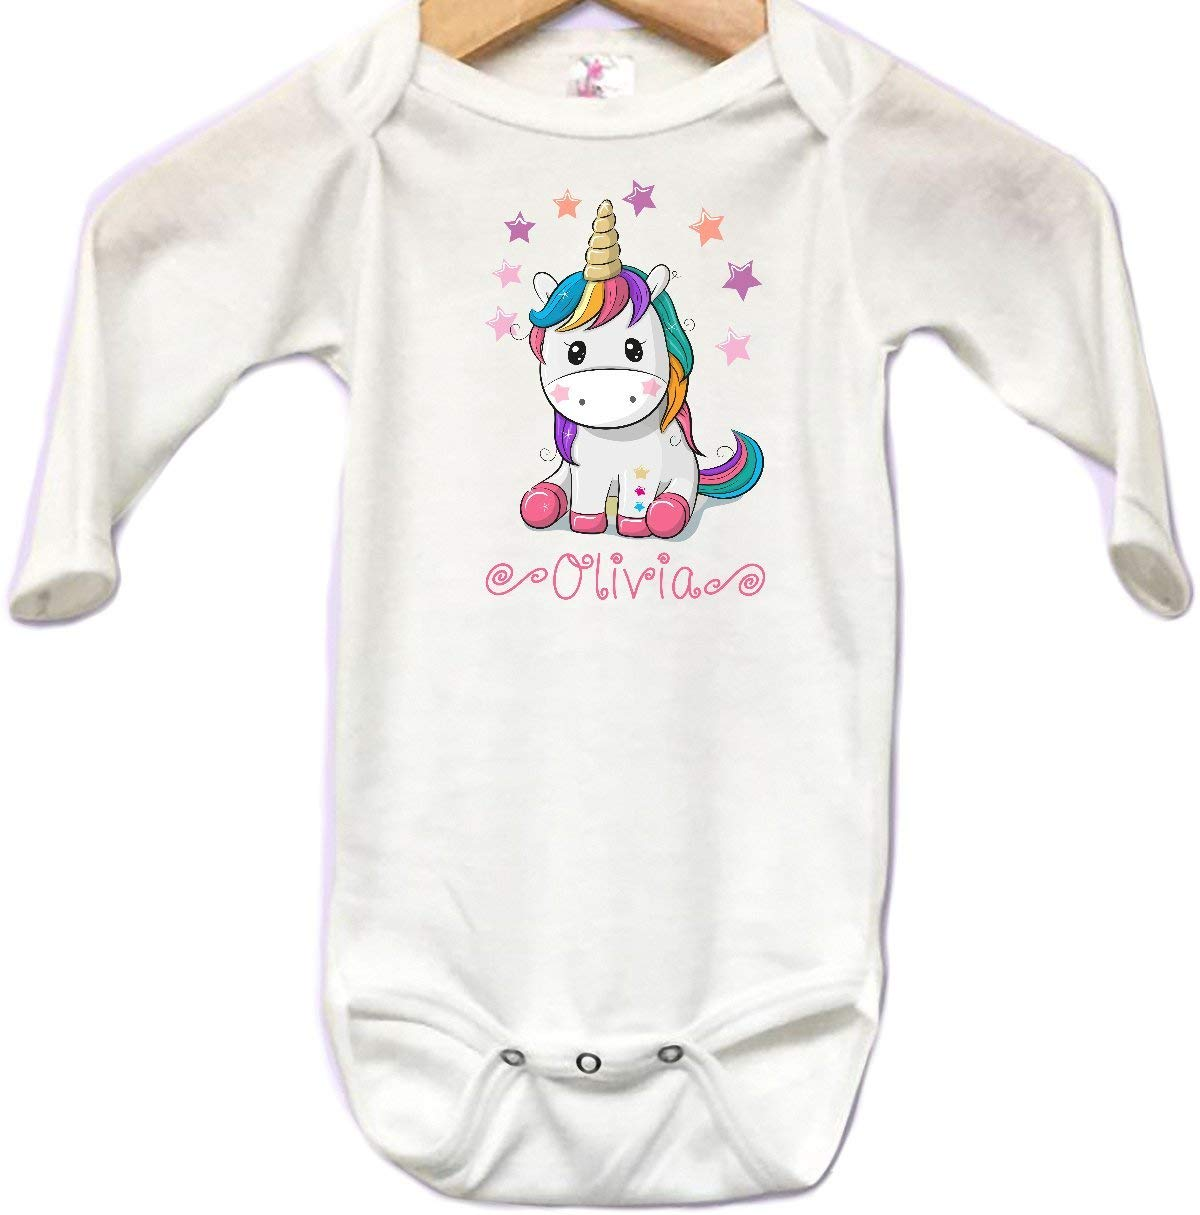 Unicorn Colorful Stars Pink Baby Onesie Bodysuit Long Sleeve Cute Personalized Custom Name 0 to 3 mos or 3 to 6 months or 6-12 months for Girls